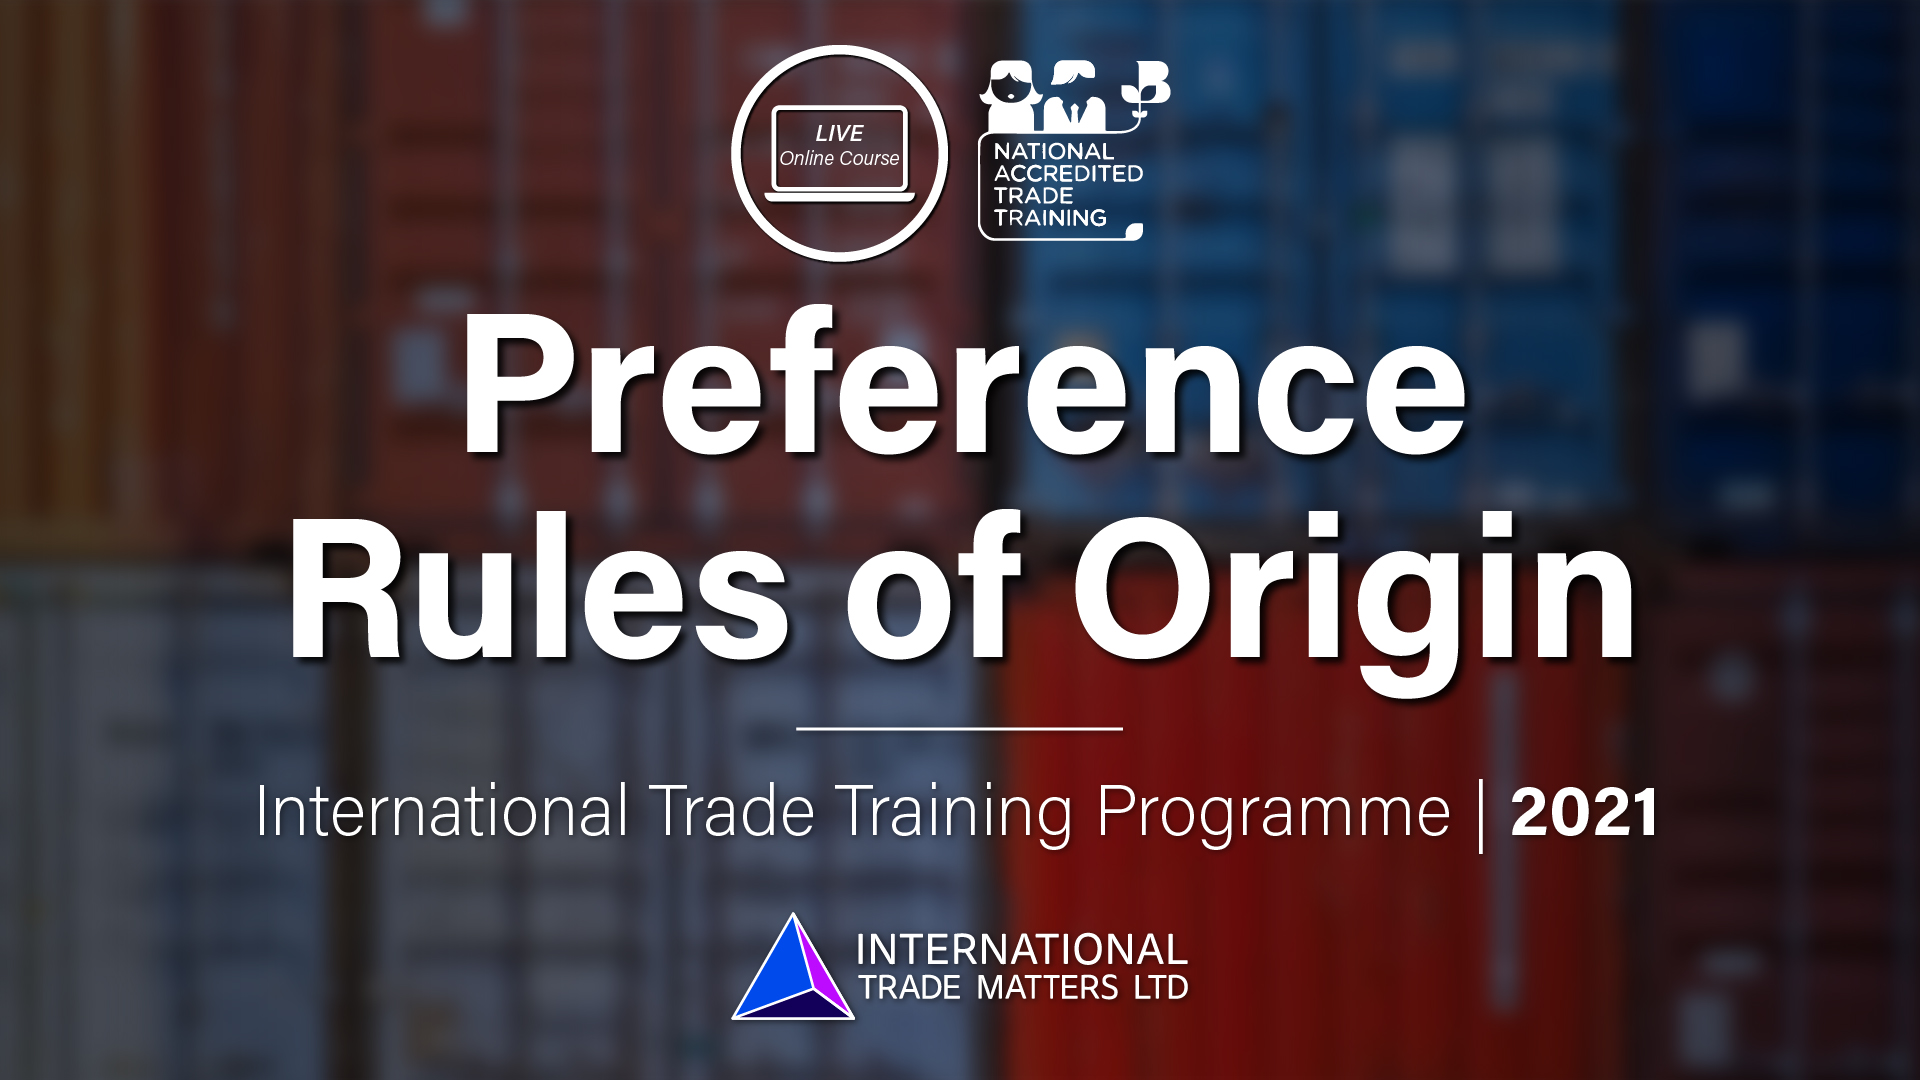 Preference Rules of Origin – An Online Course